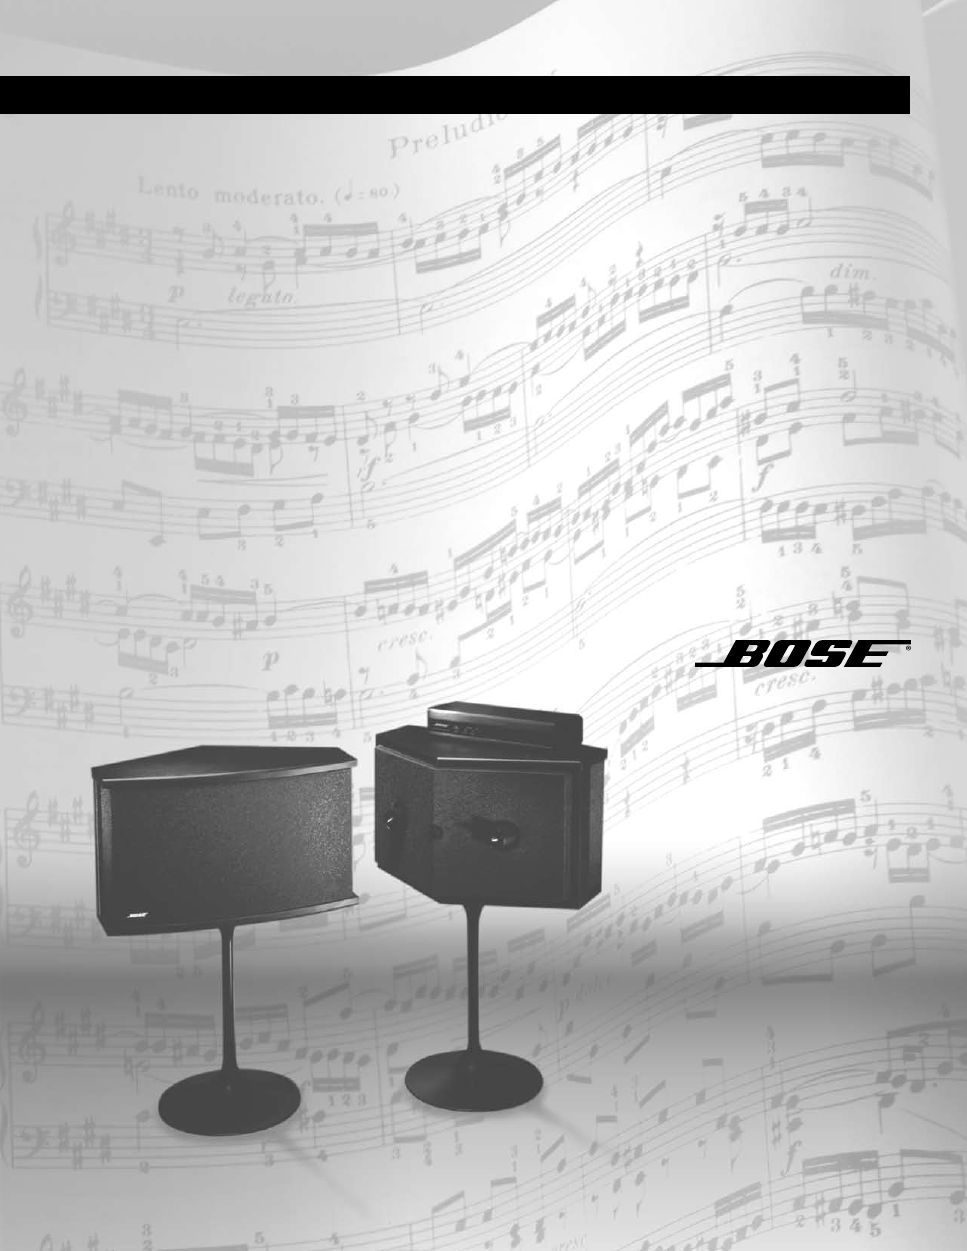 bose 901 series vi loudspeaker system owner s manual free pdf rh manualagent com Bose 901 Active Equalizer Manual bose 901 series vi active equalizer service manual